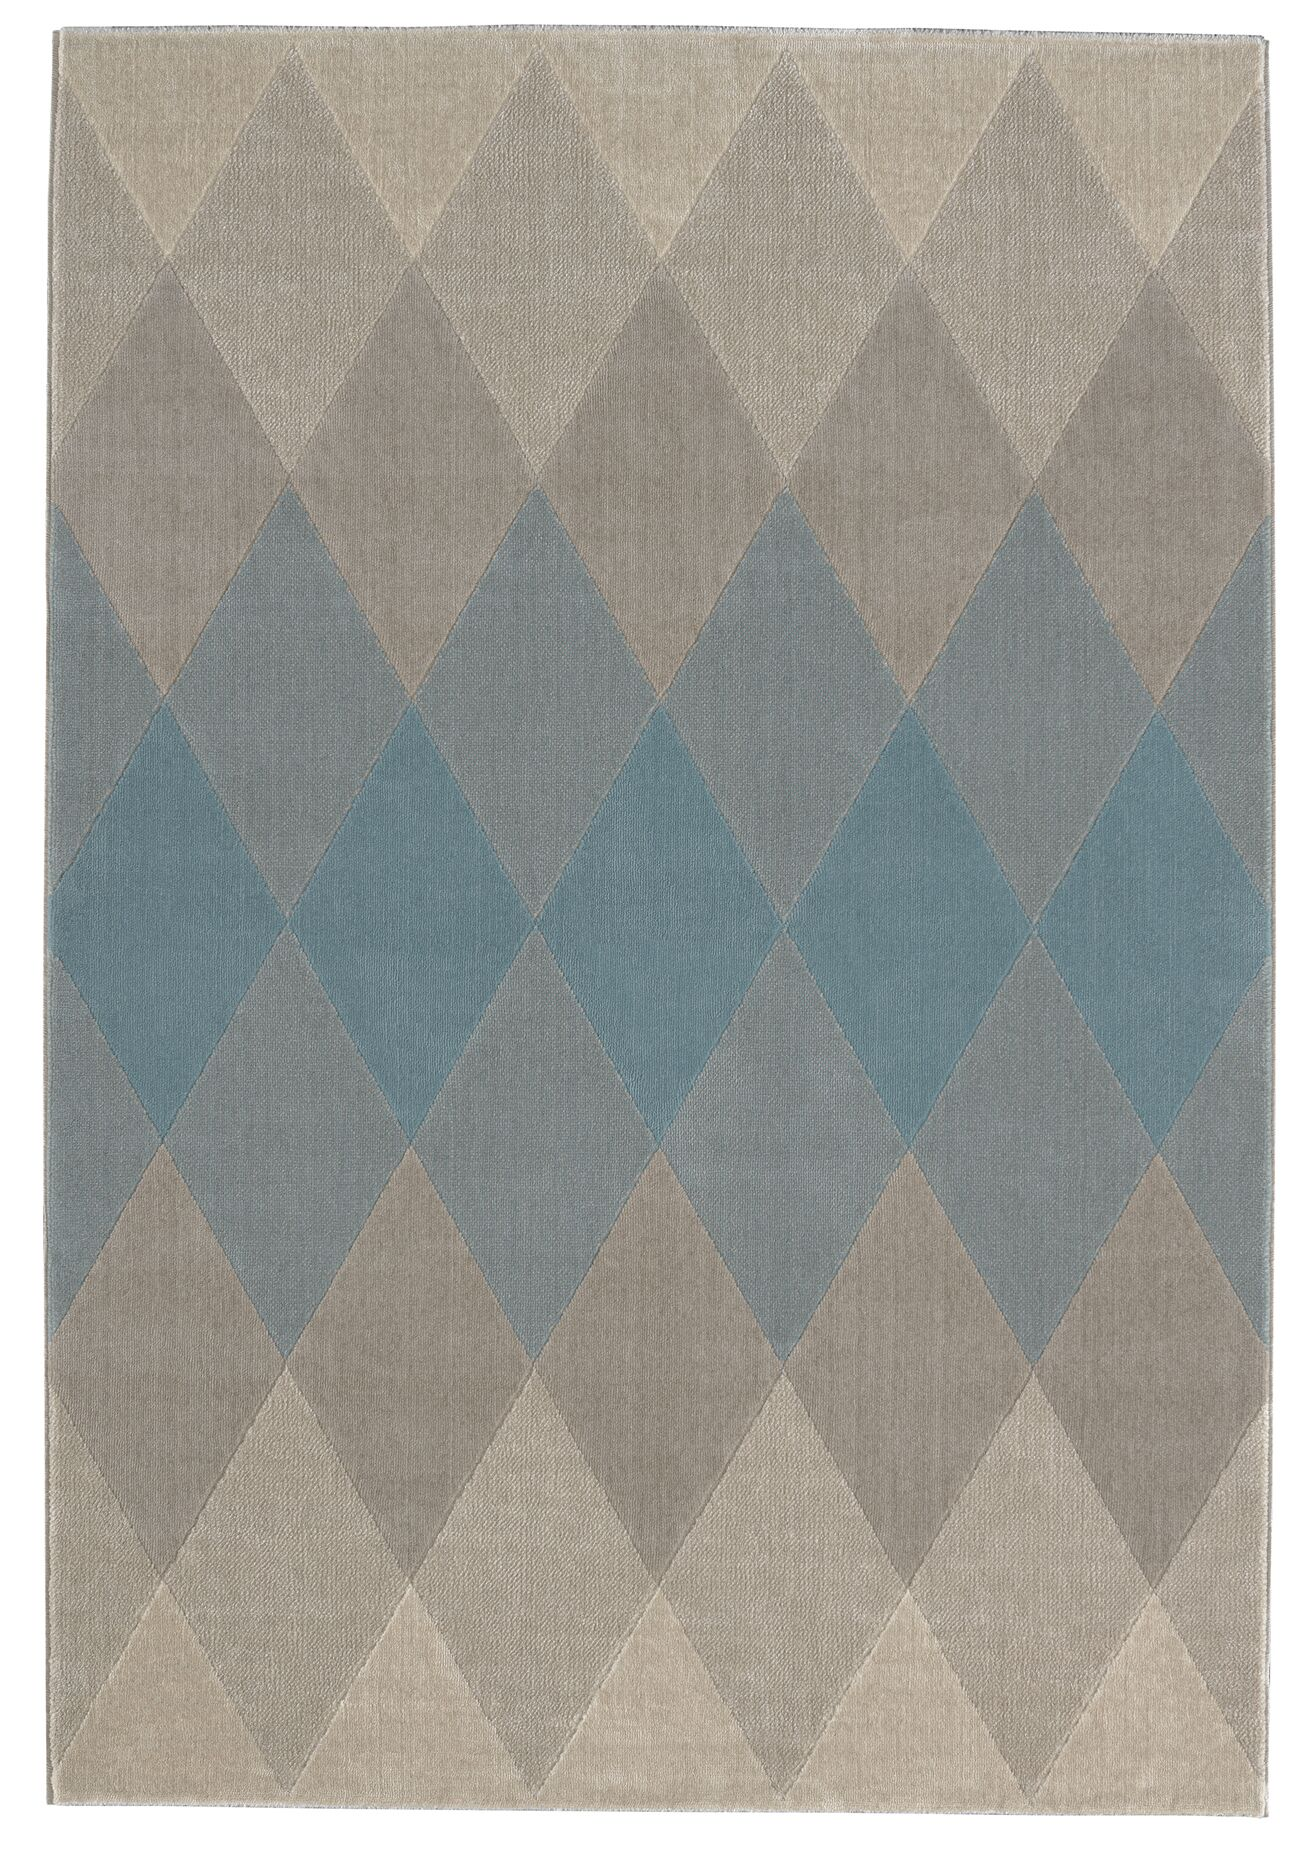 Cullinan Blue Area Rug Rug Size: Rectangle 7'10